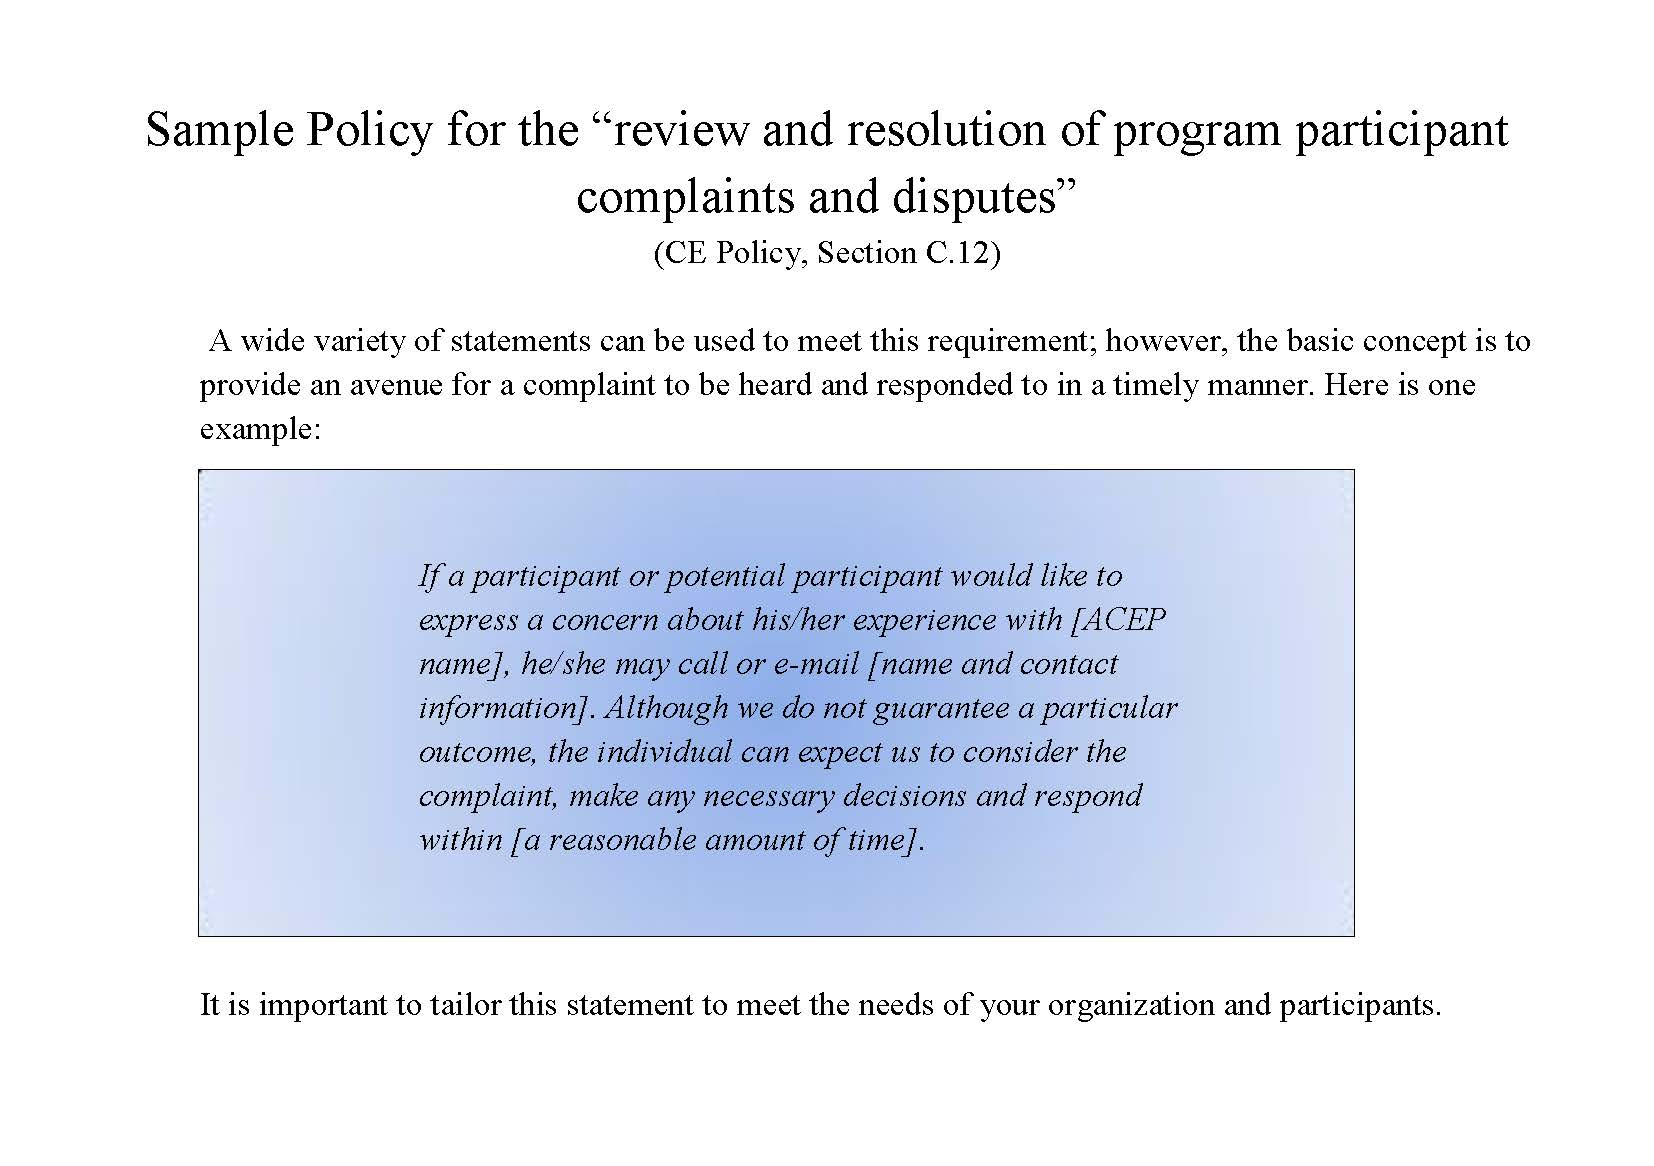 Policy for Complaints